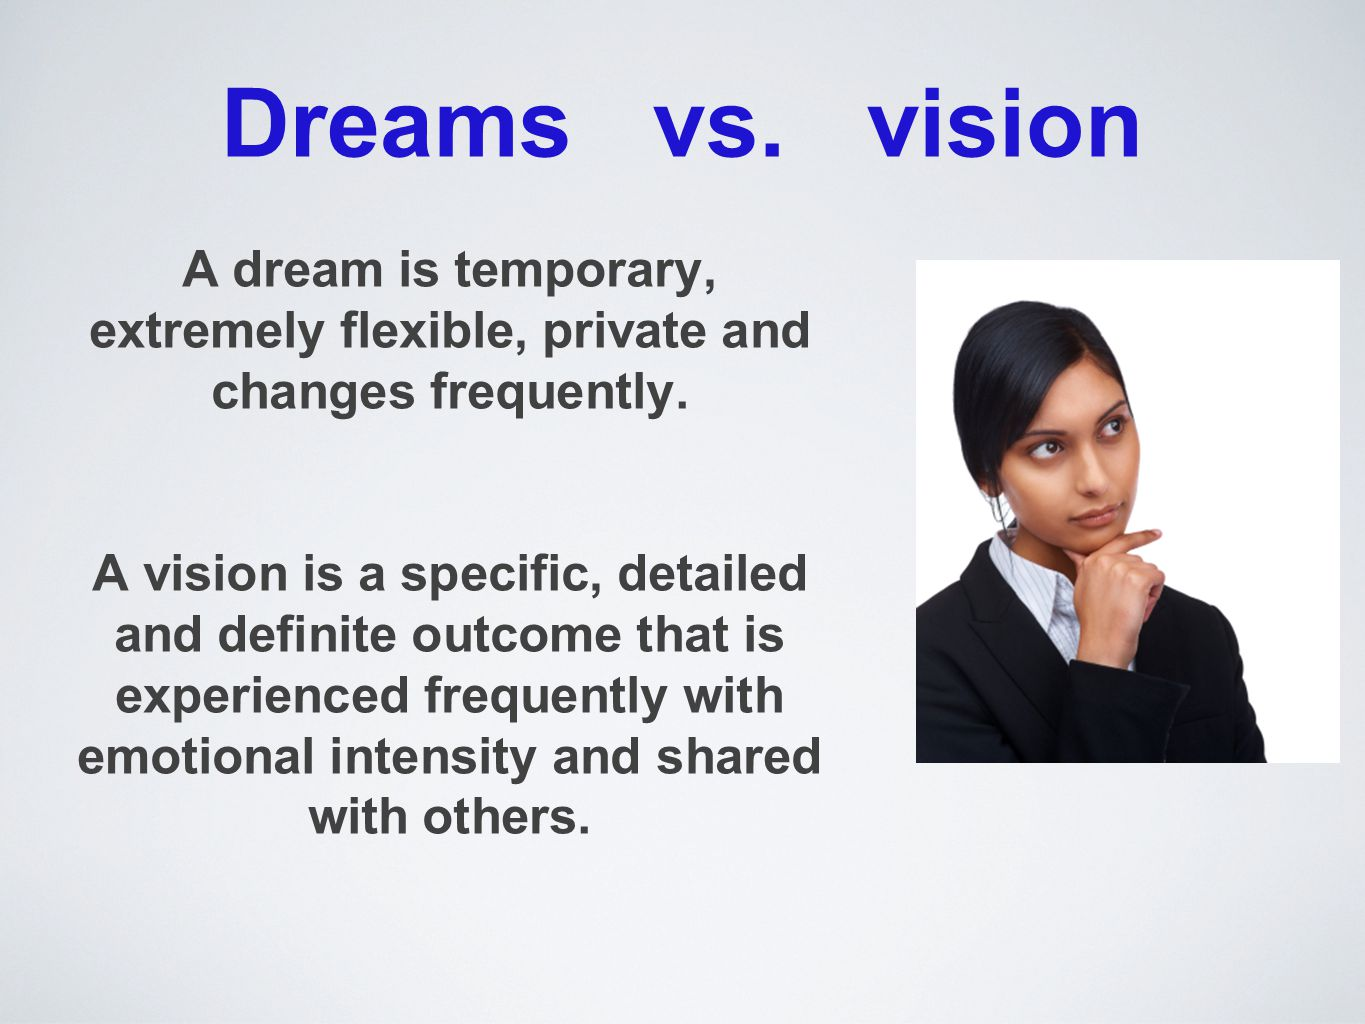 Vision A vision is a dream that has repeatedly been imbedded into ones nervous system to the point that it becomes an unquestioned belief.